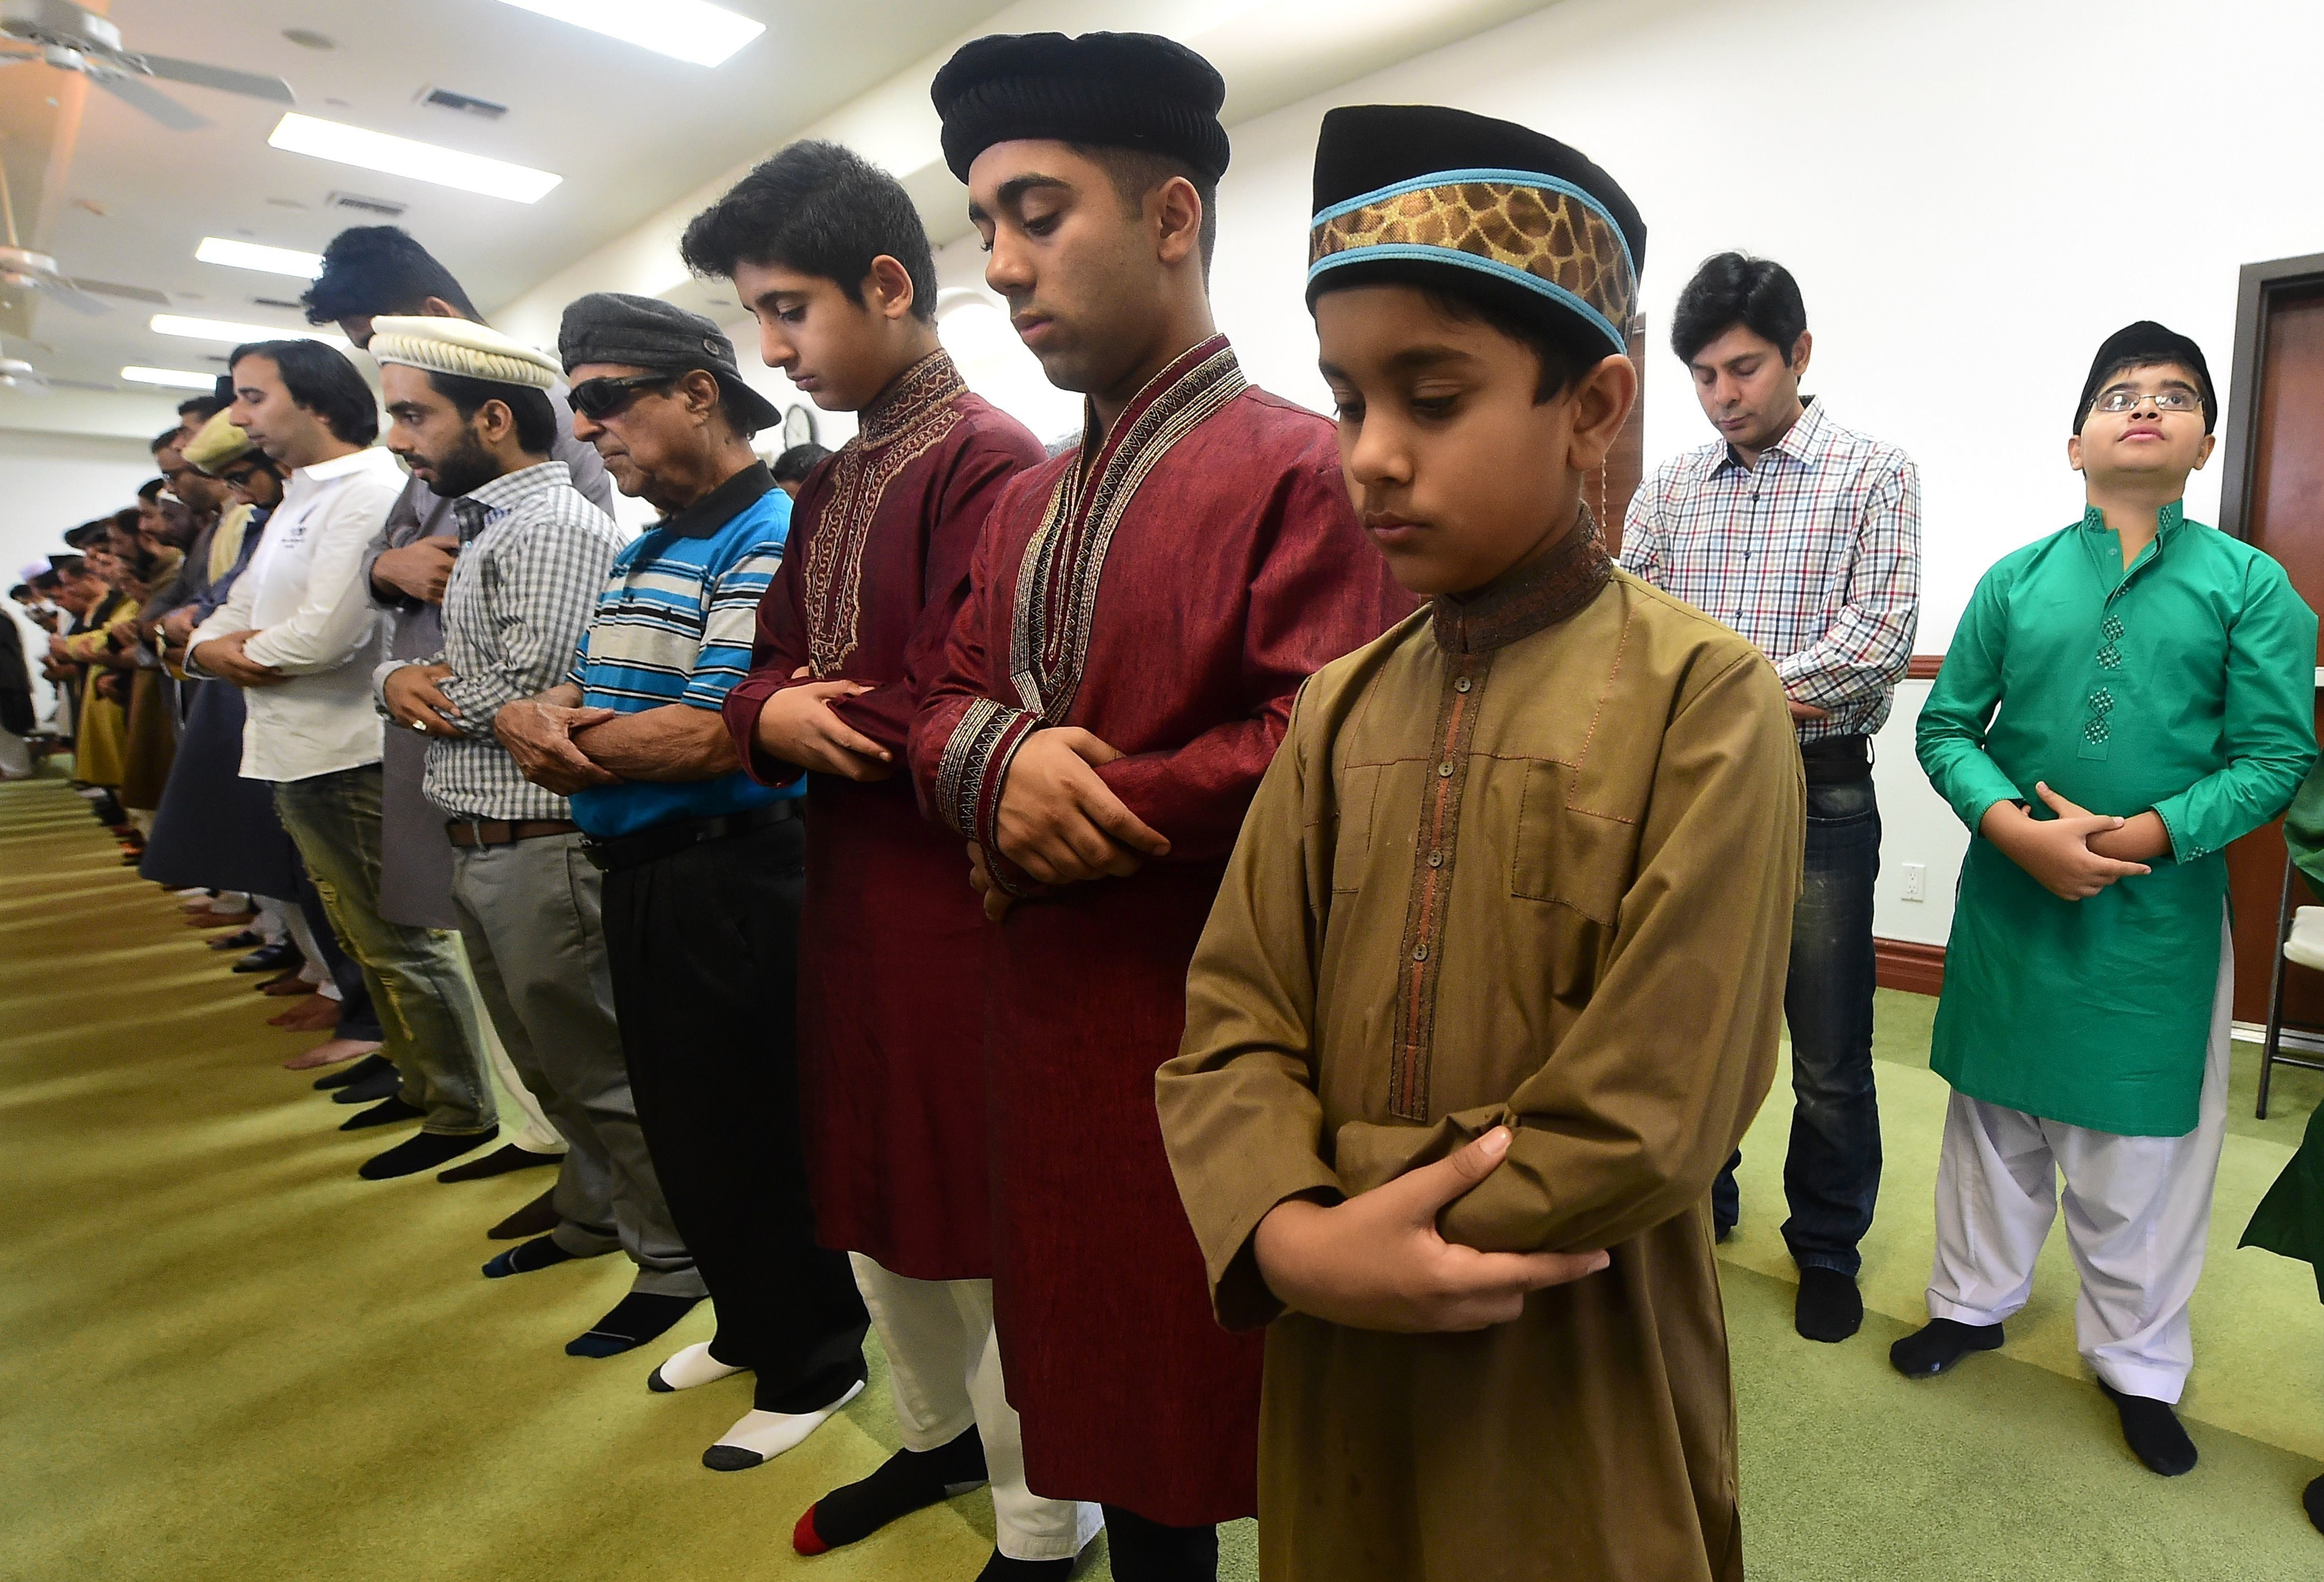 Muslims pray while celebrating Eid al-Fitr, marking the end of fasting during the month-long Ramadan, at the Baitul Hameed Mo